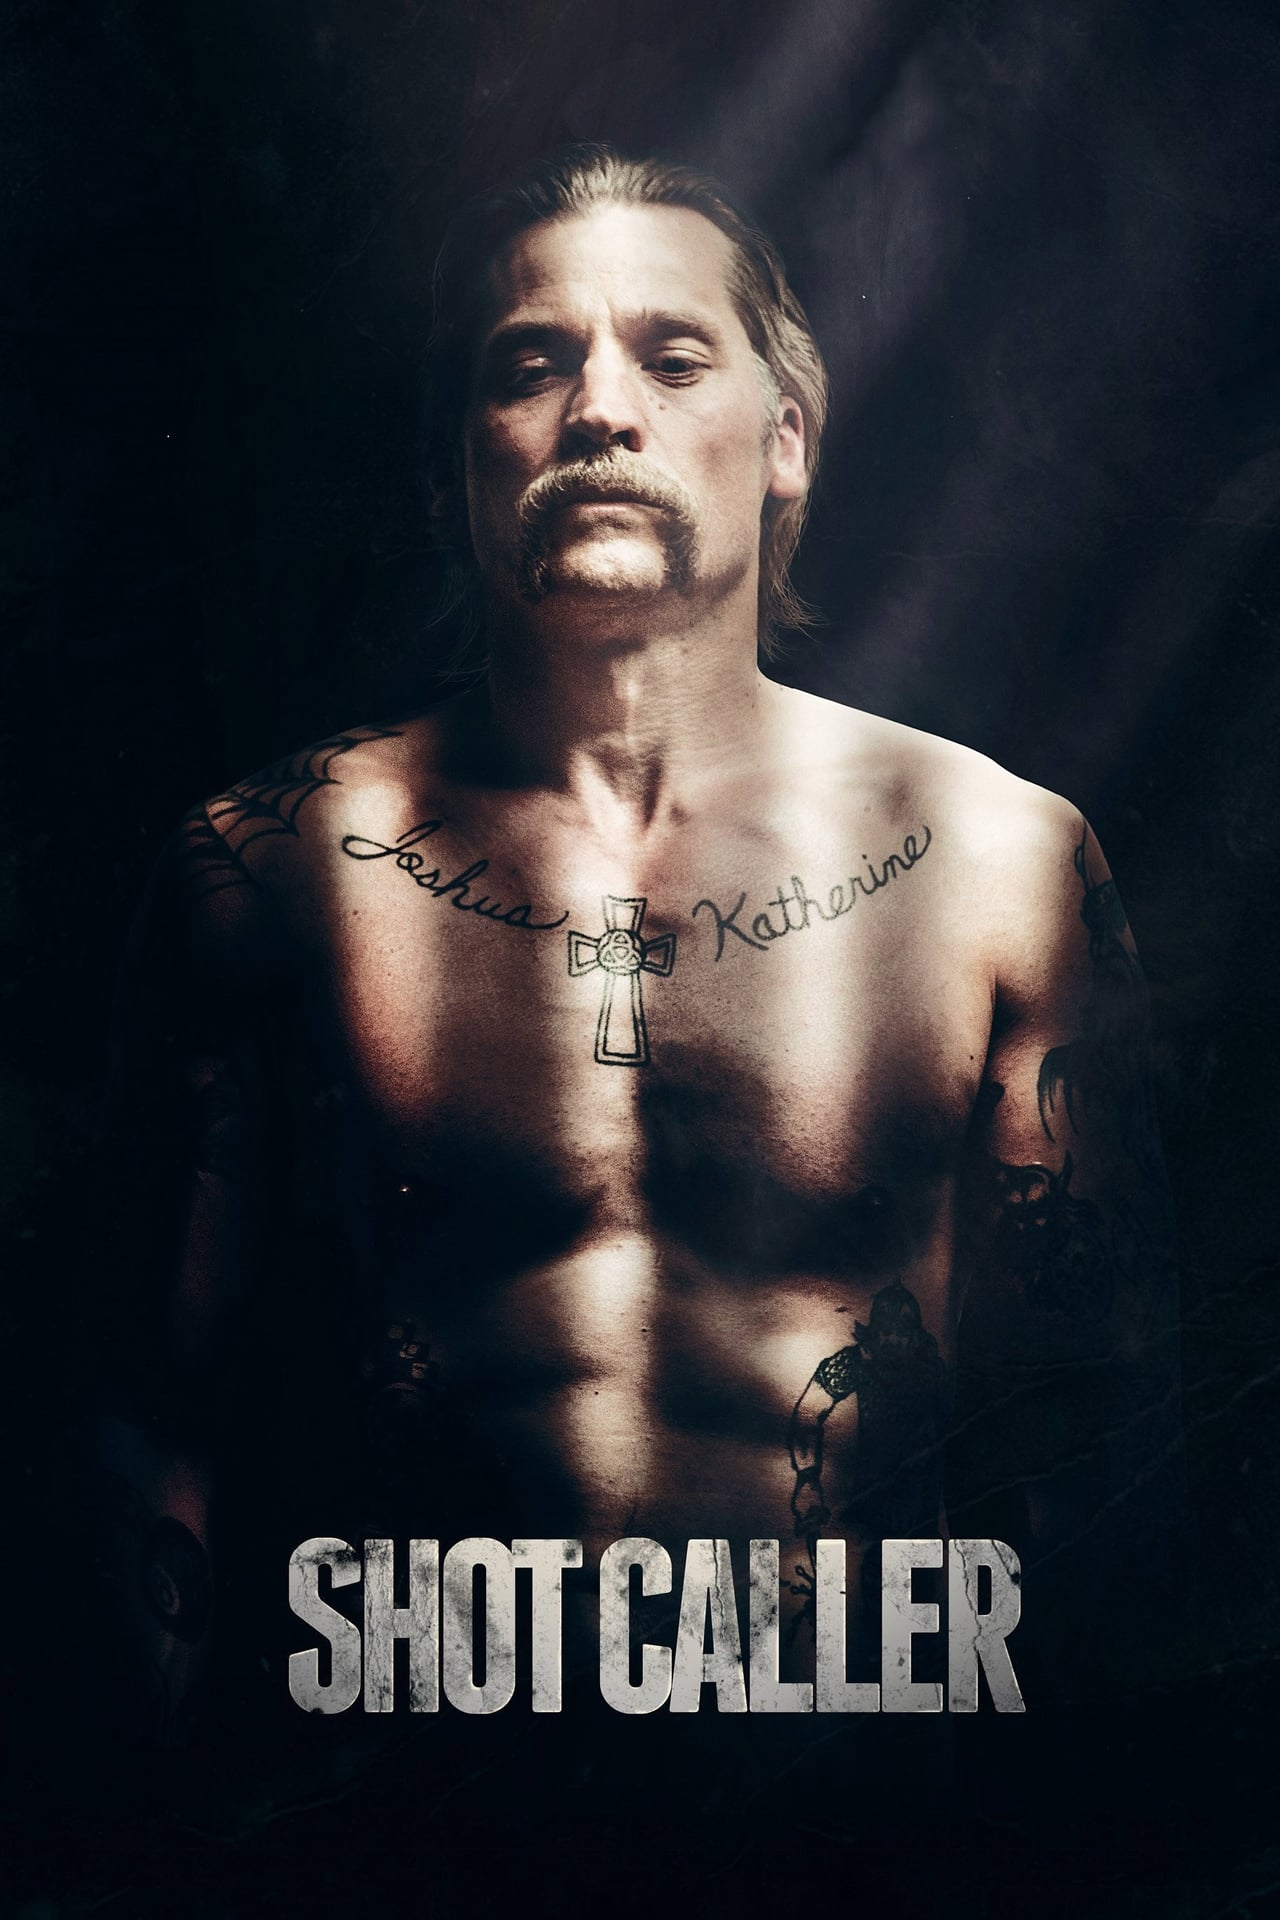 watch] full movie shot caller (2017) streaming and download - the